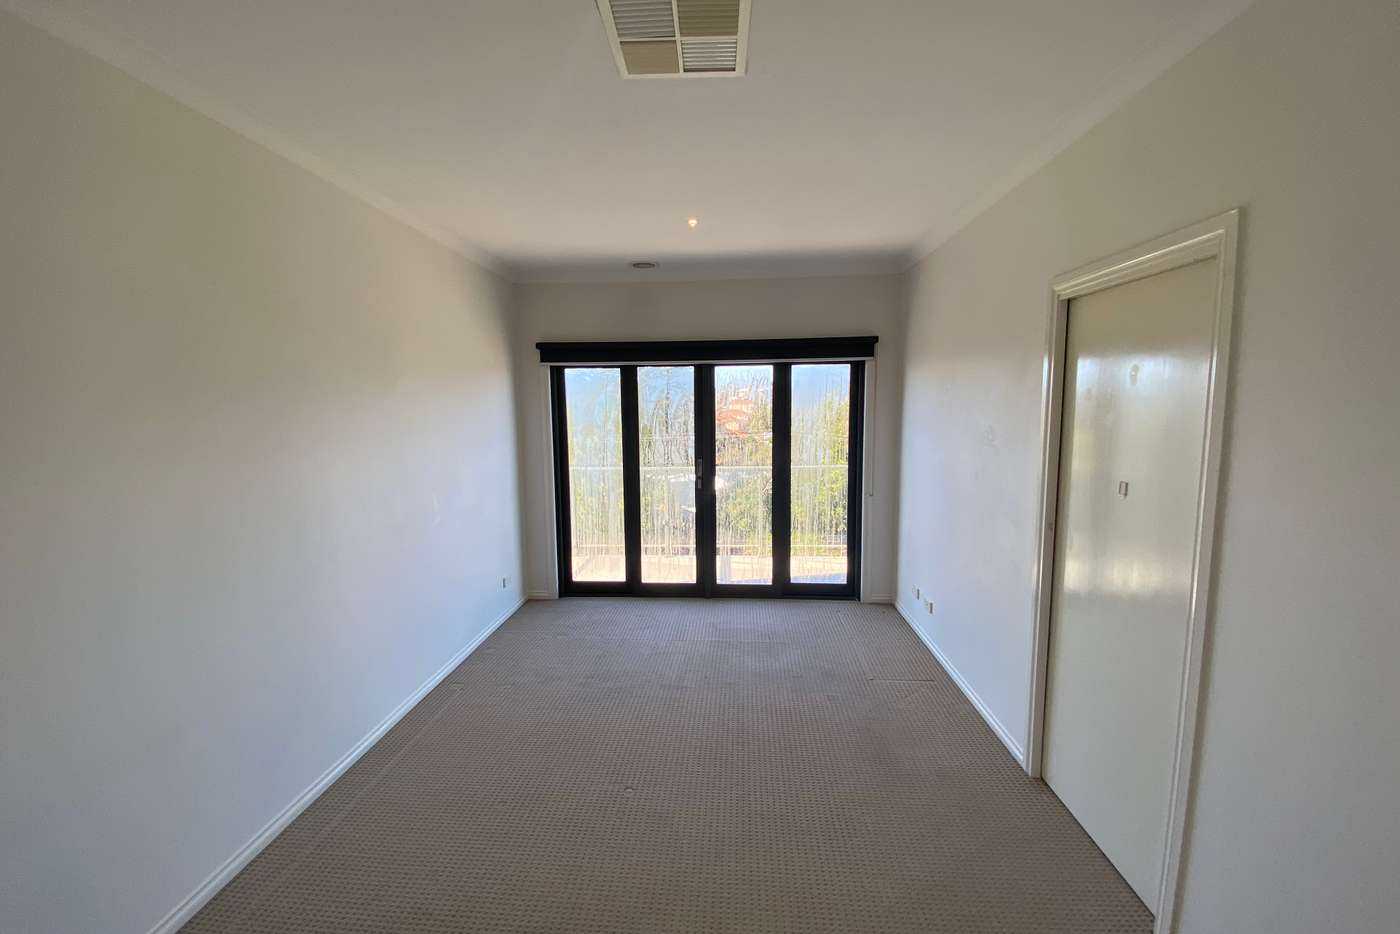 Sixth view of Homely house listing, 1/73 Winfield Road, Balwyn North VIC 3104